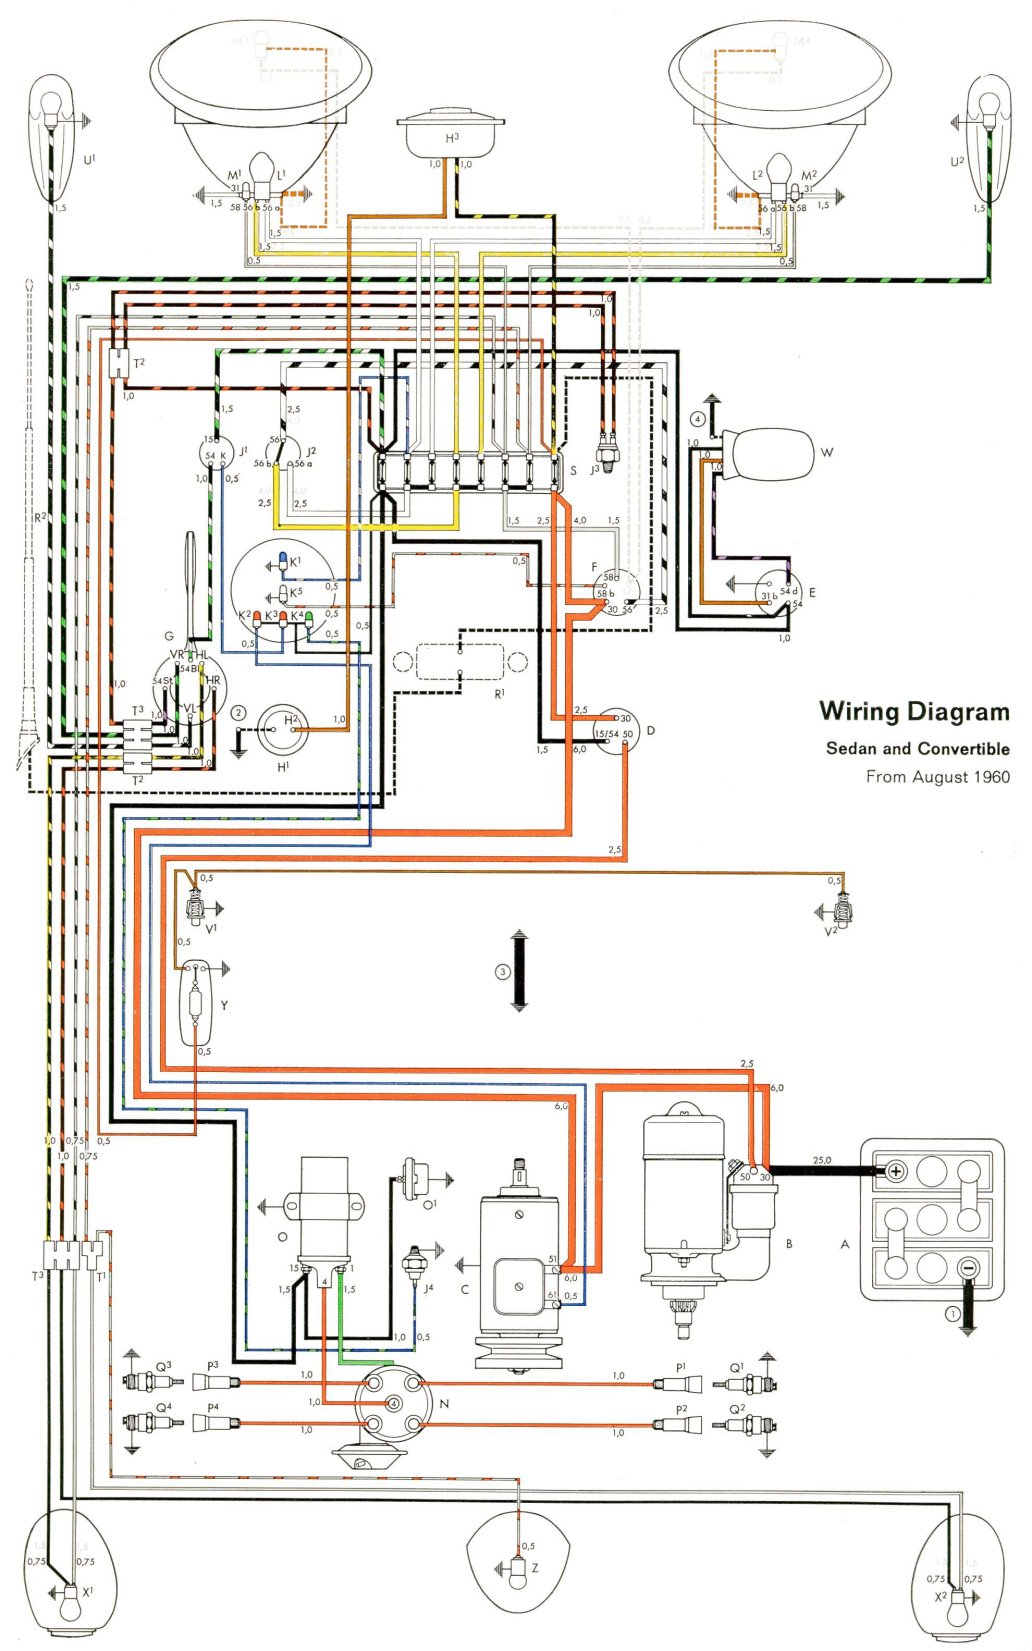 bug_61 1961 beetle wiring diagram thegoldenbug com VW Alternator Hook Up at reclaimingppi.co